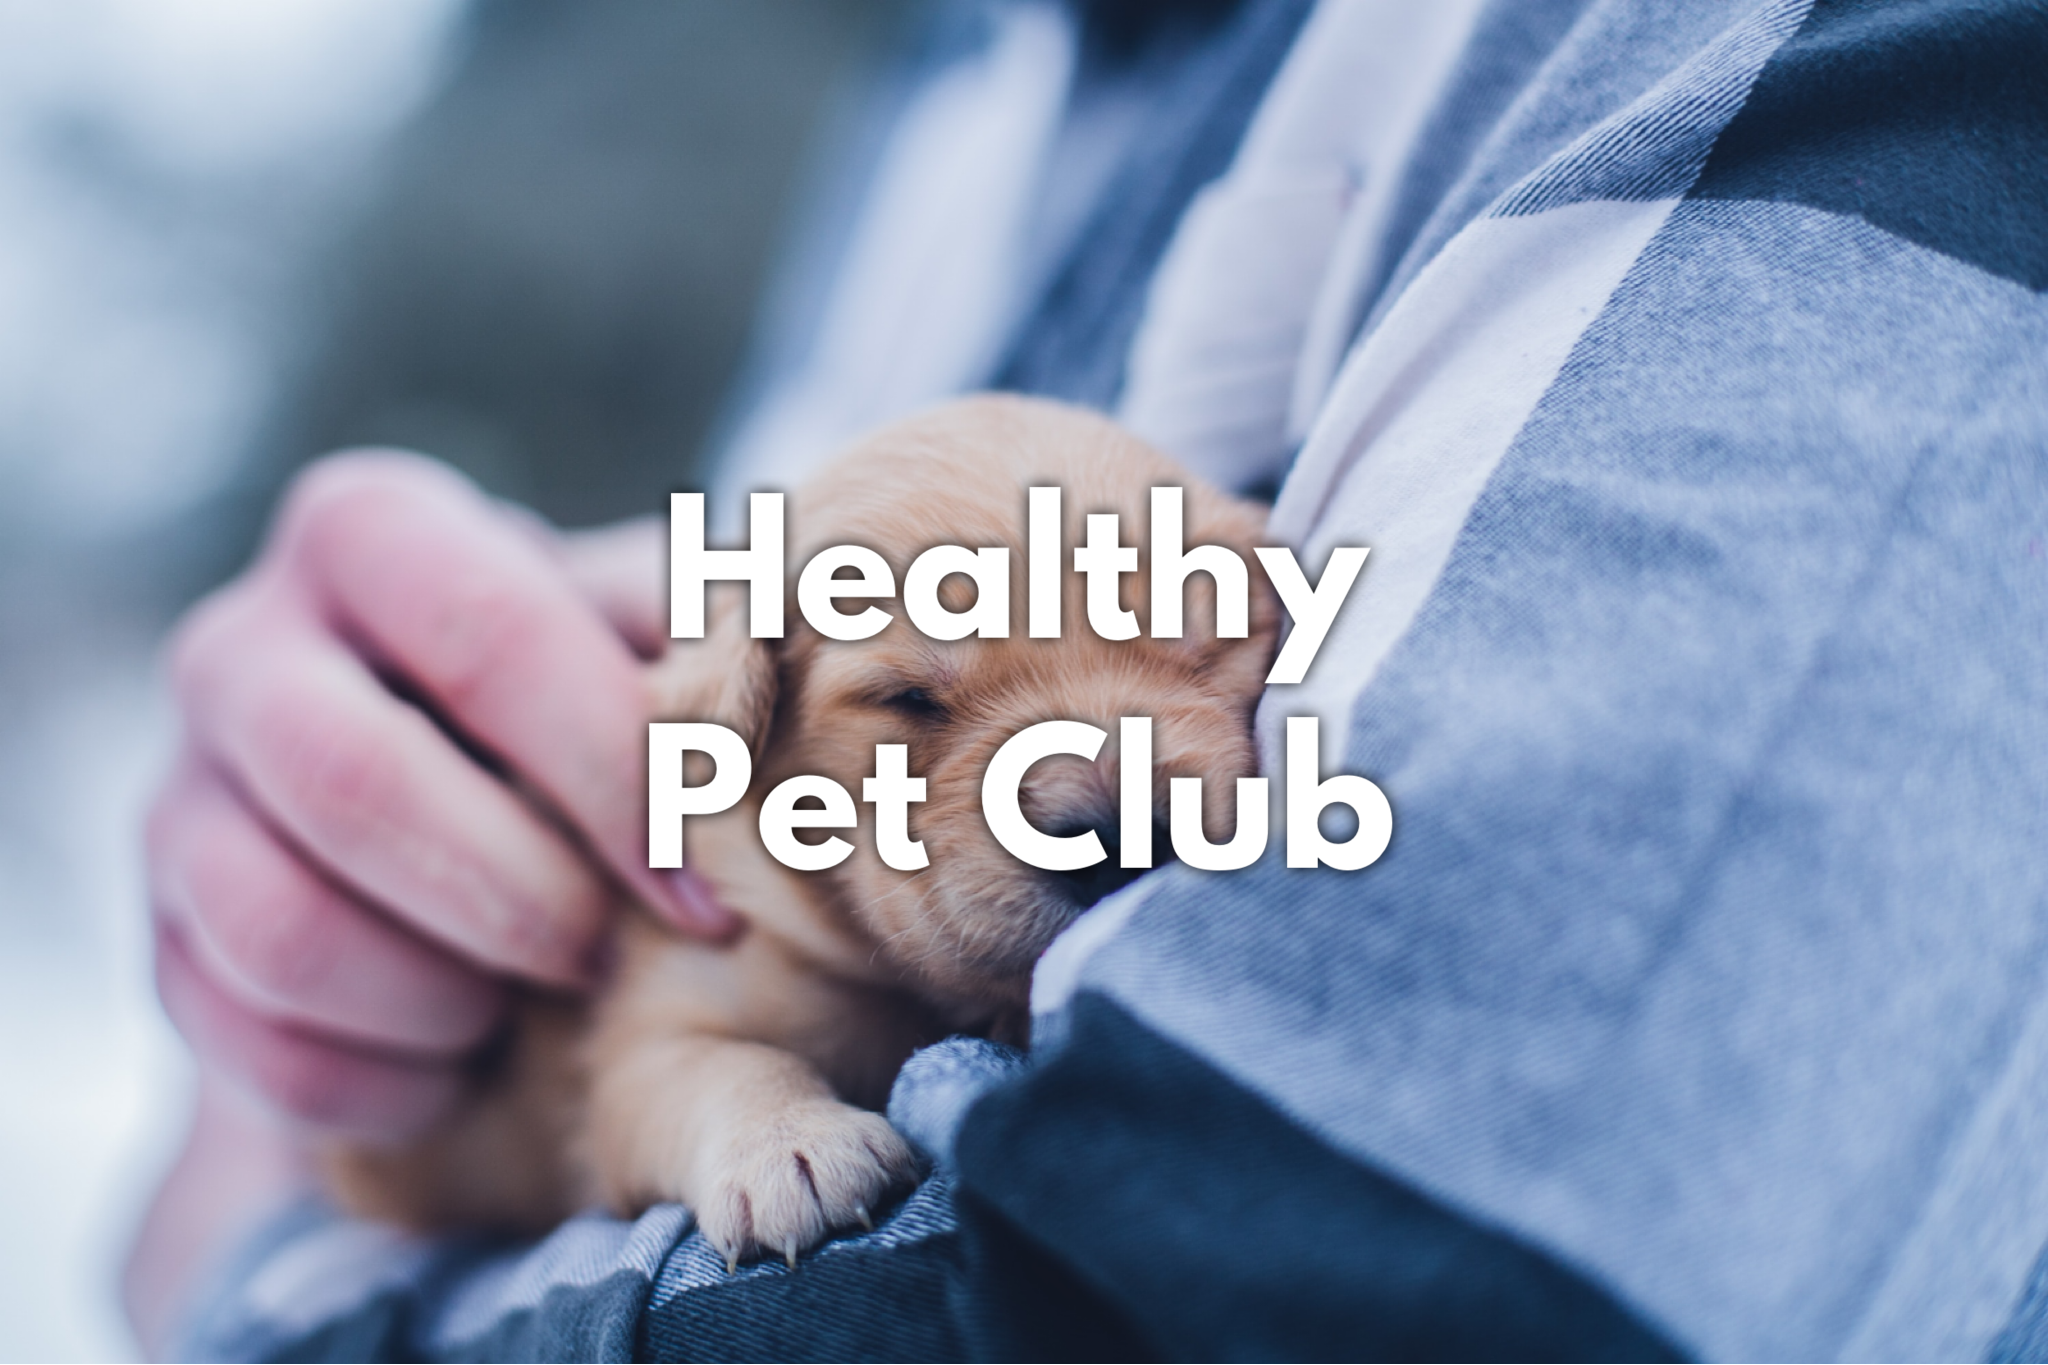 Healthy Pet Club